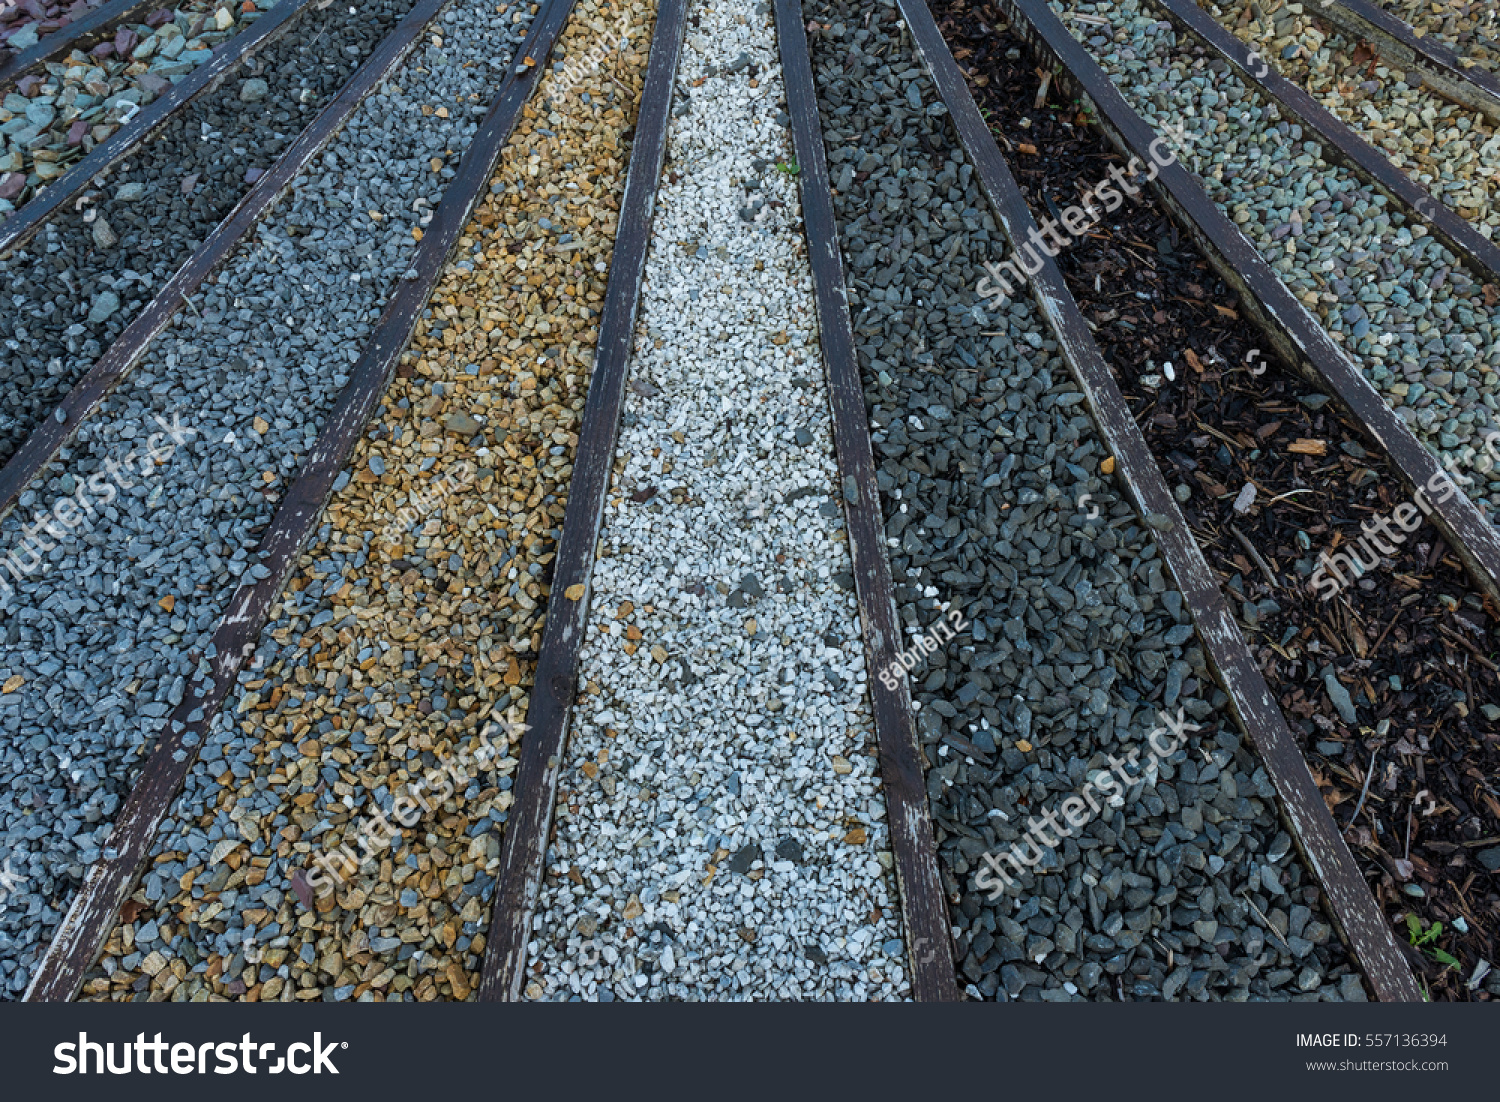 Various types of stone and gravel pebbles for garden landscaping